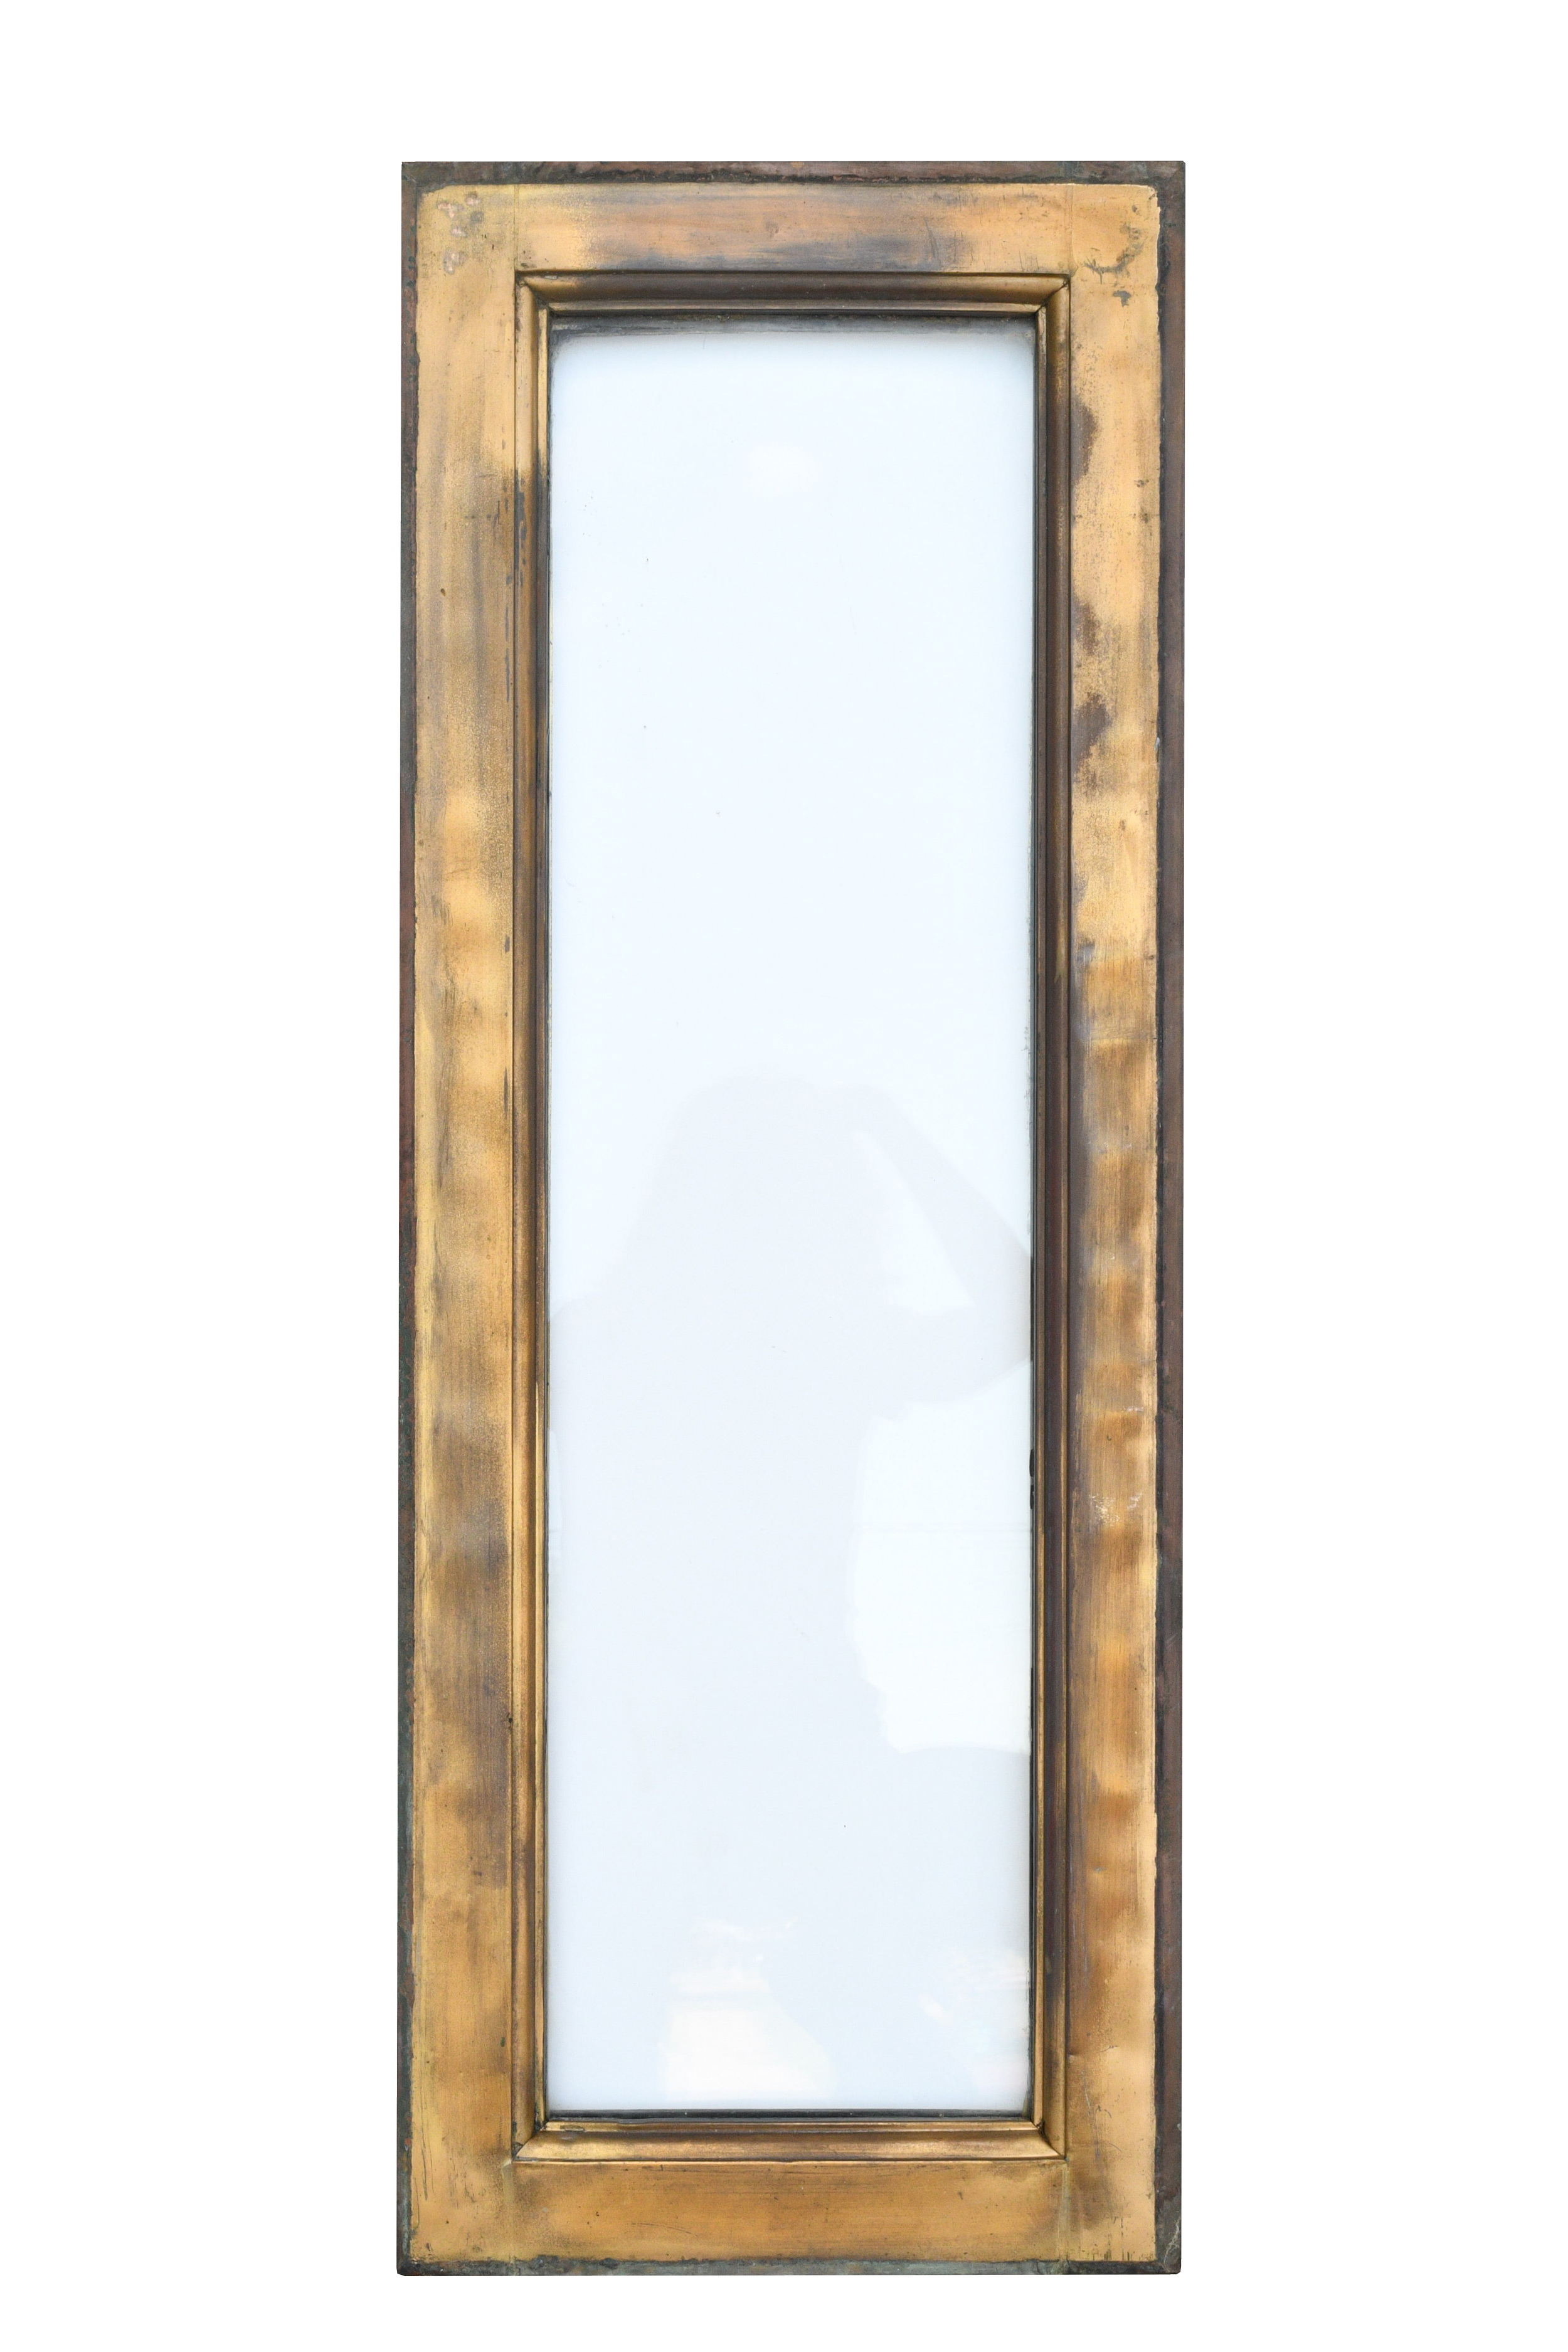 Left & Right Sidelight Transom (2 pieces)